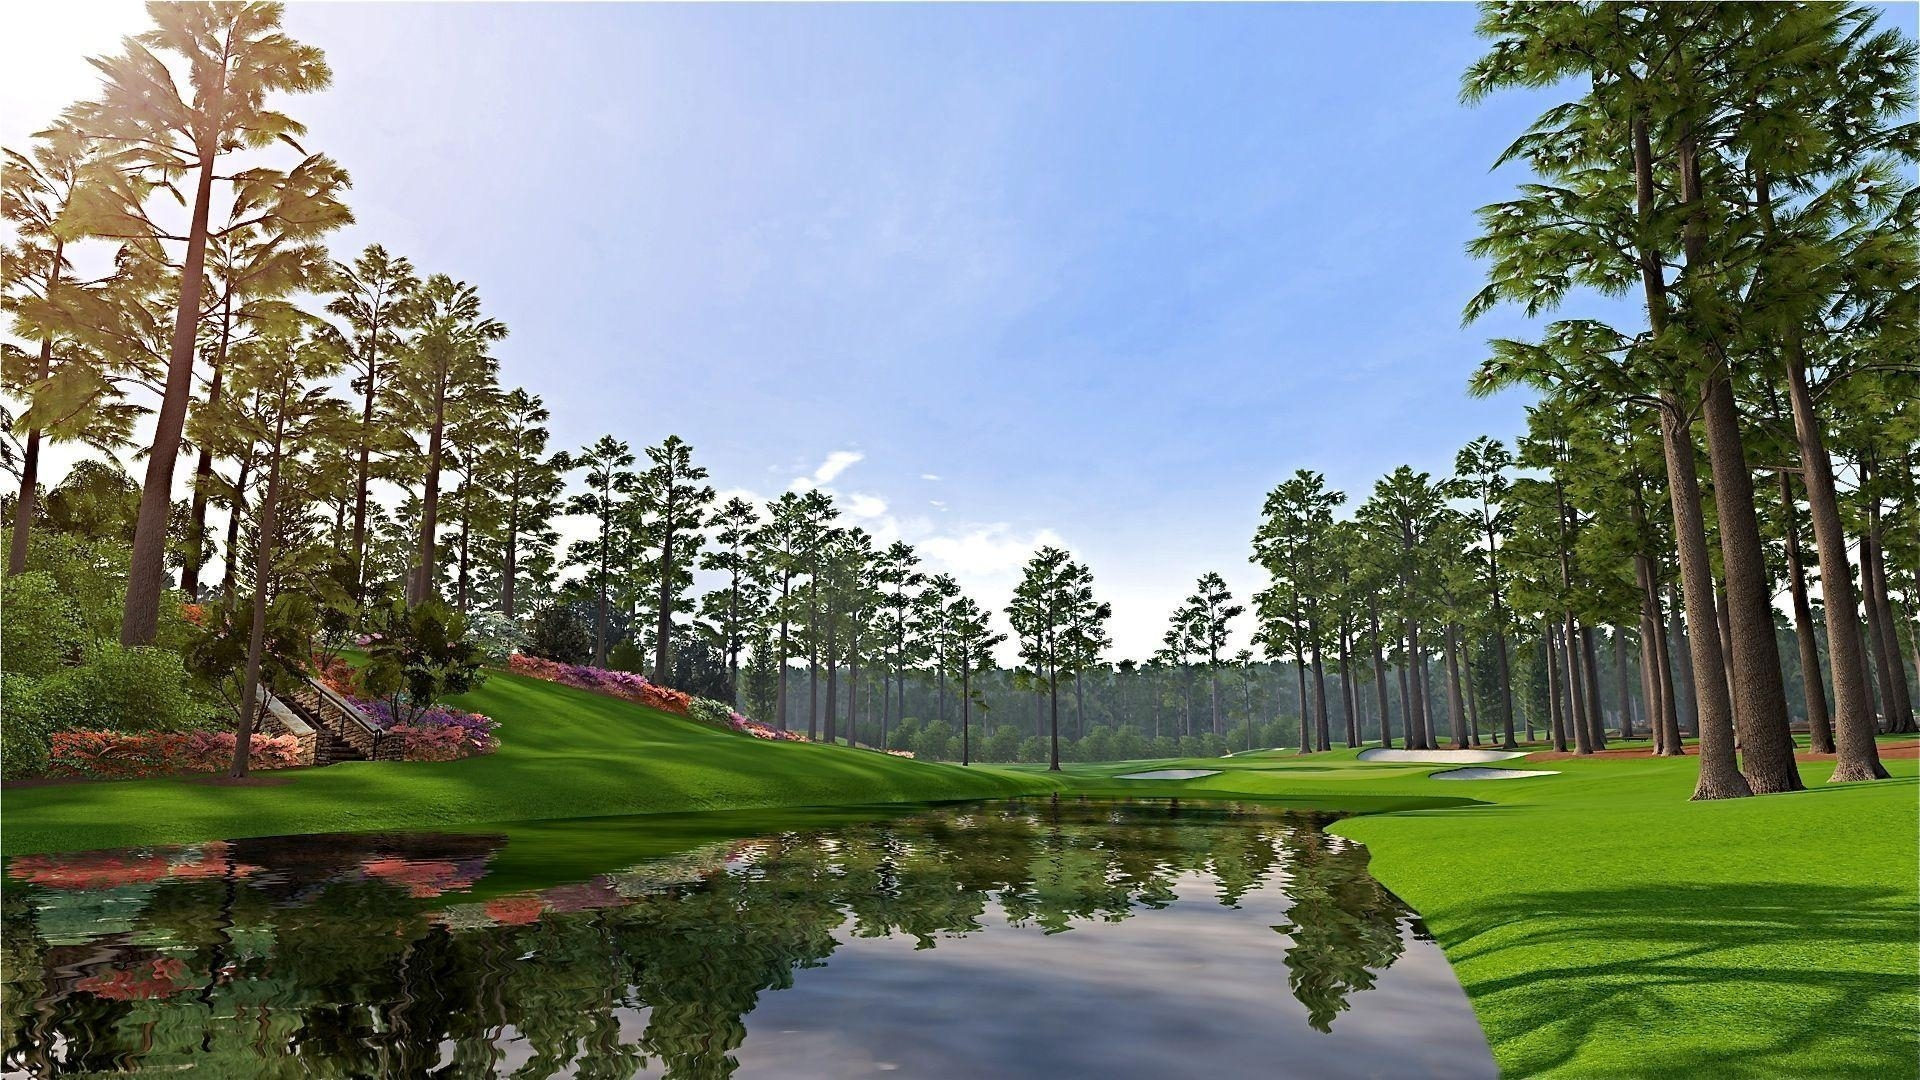 augusta national wallpapers - wallpaper cave